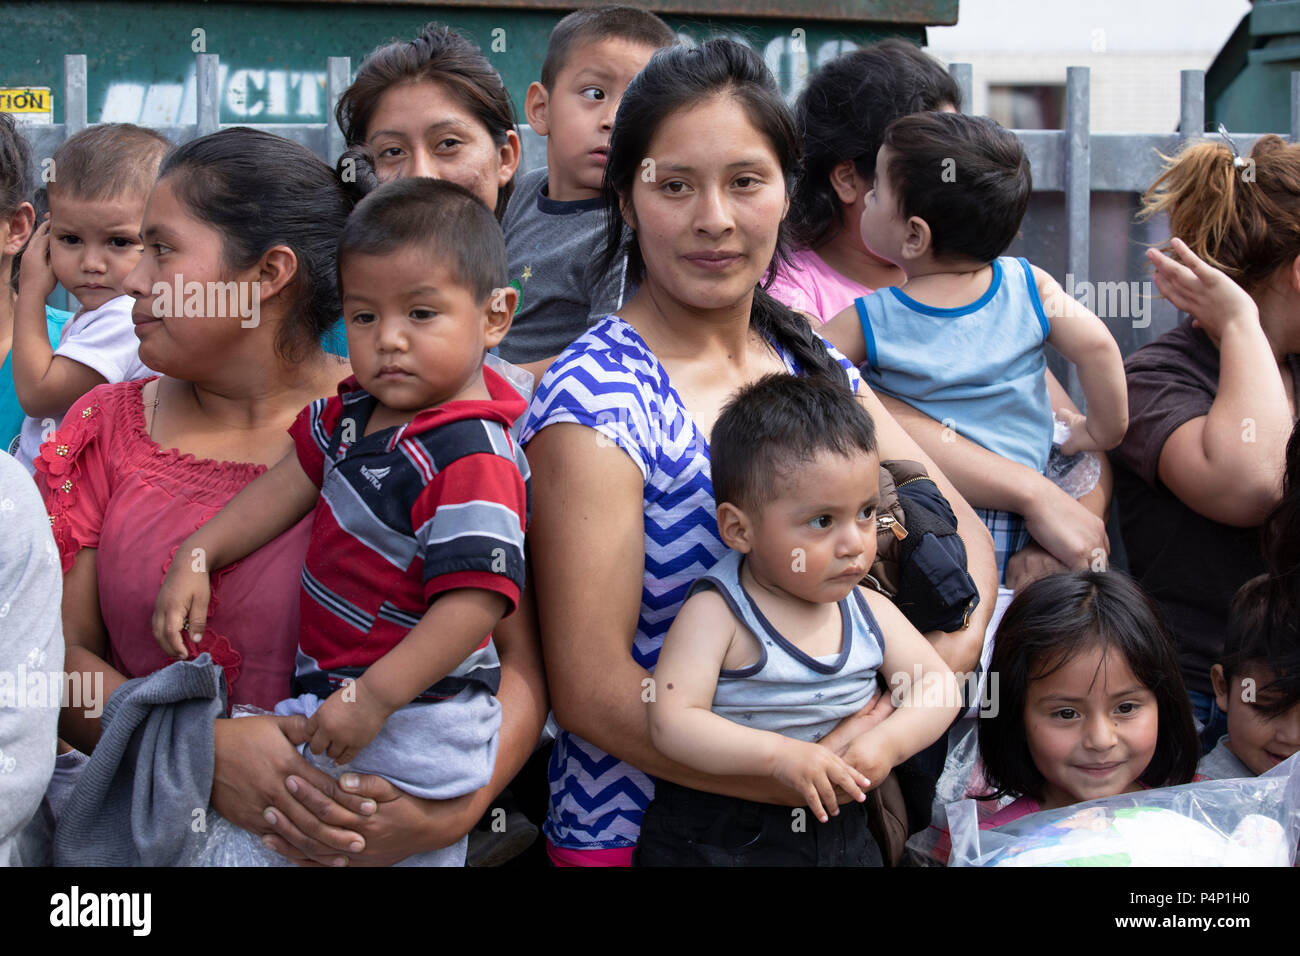 Immigrant mothers, wearing electronic monitoring devices, and their young children captured coming across the United States-Mexico border in Texas are released at a bus station in McAllen. The families will travel to stay with family members in the U.S. while awaiting deportation or asylum hearings. - Stock Image